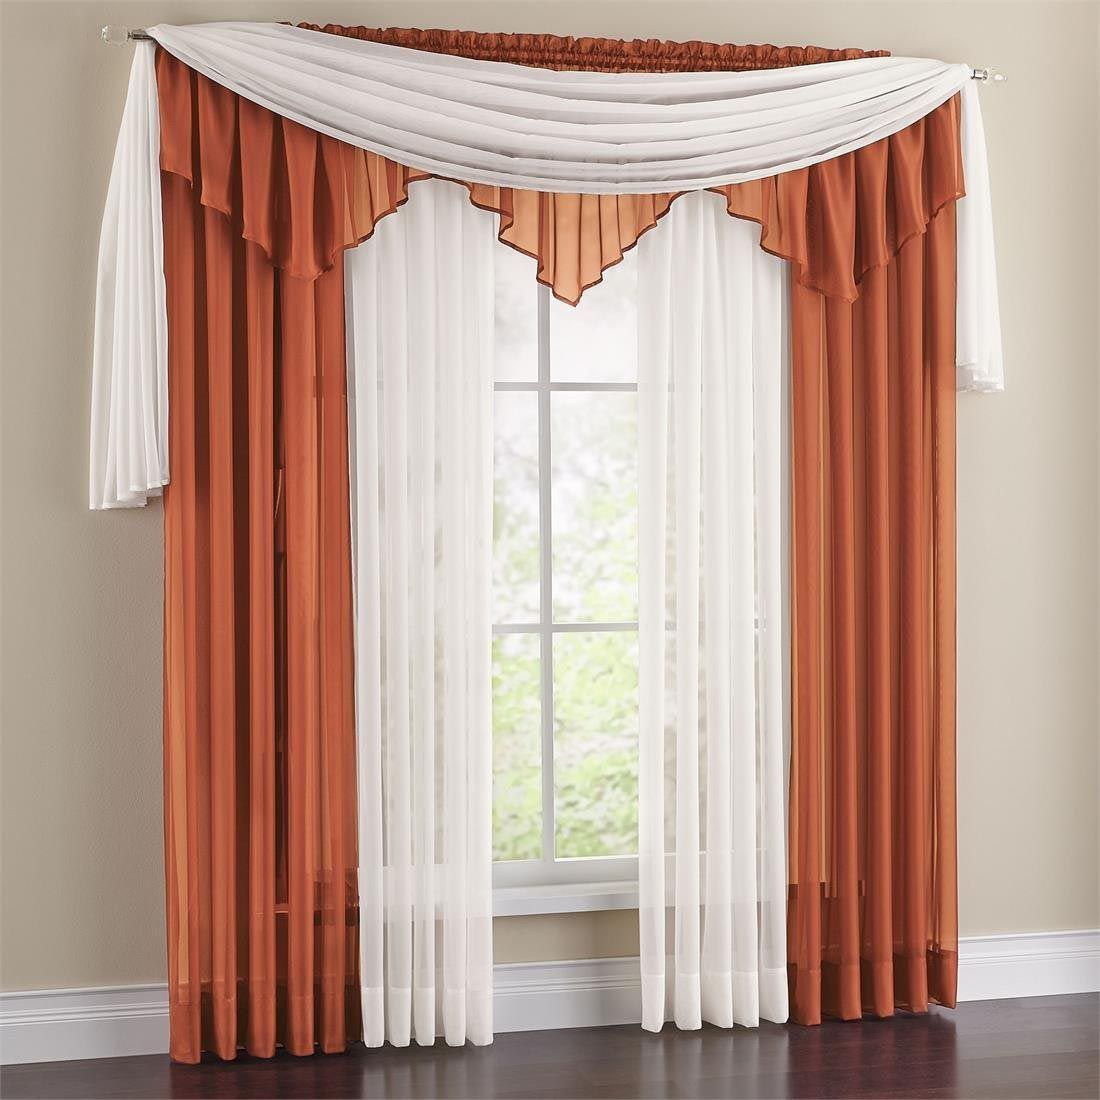 Vista Sheer 288 Inch Scarf Valance Curtain Designs Scarf